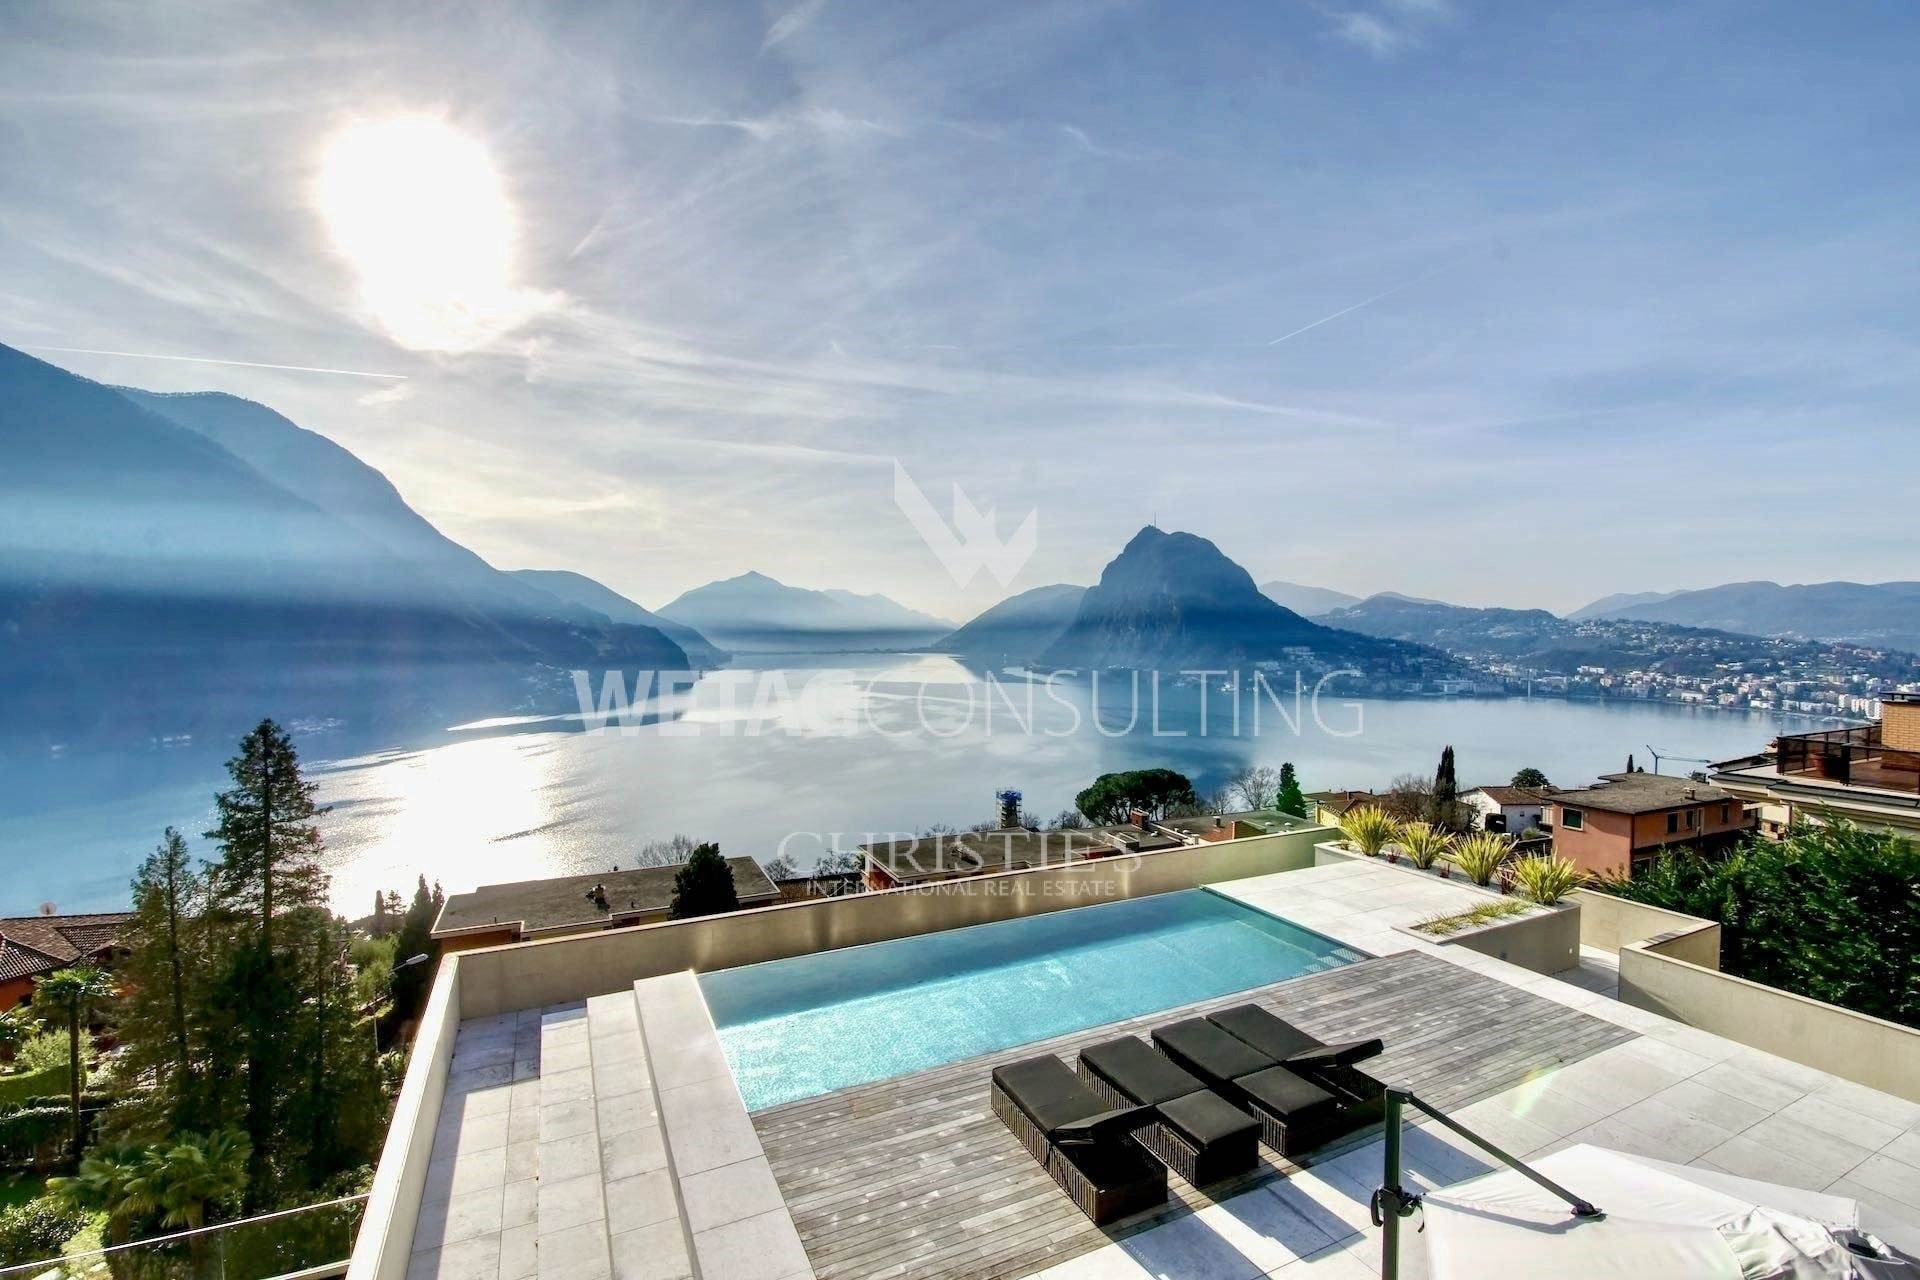 Apartamento por un Venta en Modern & luxury duplex-penthouse with pools & large terrace in Ruvigliana for sale Ruvigliana, Tesino,6977 Suiza